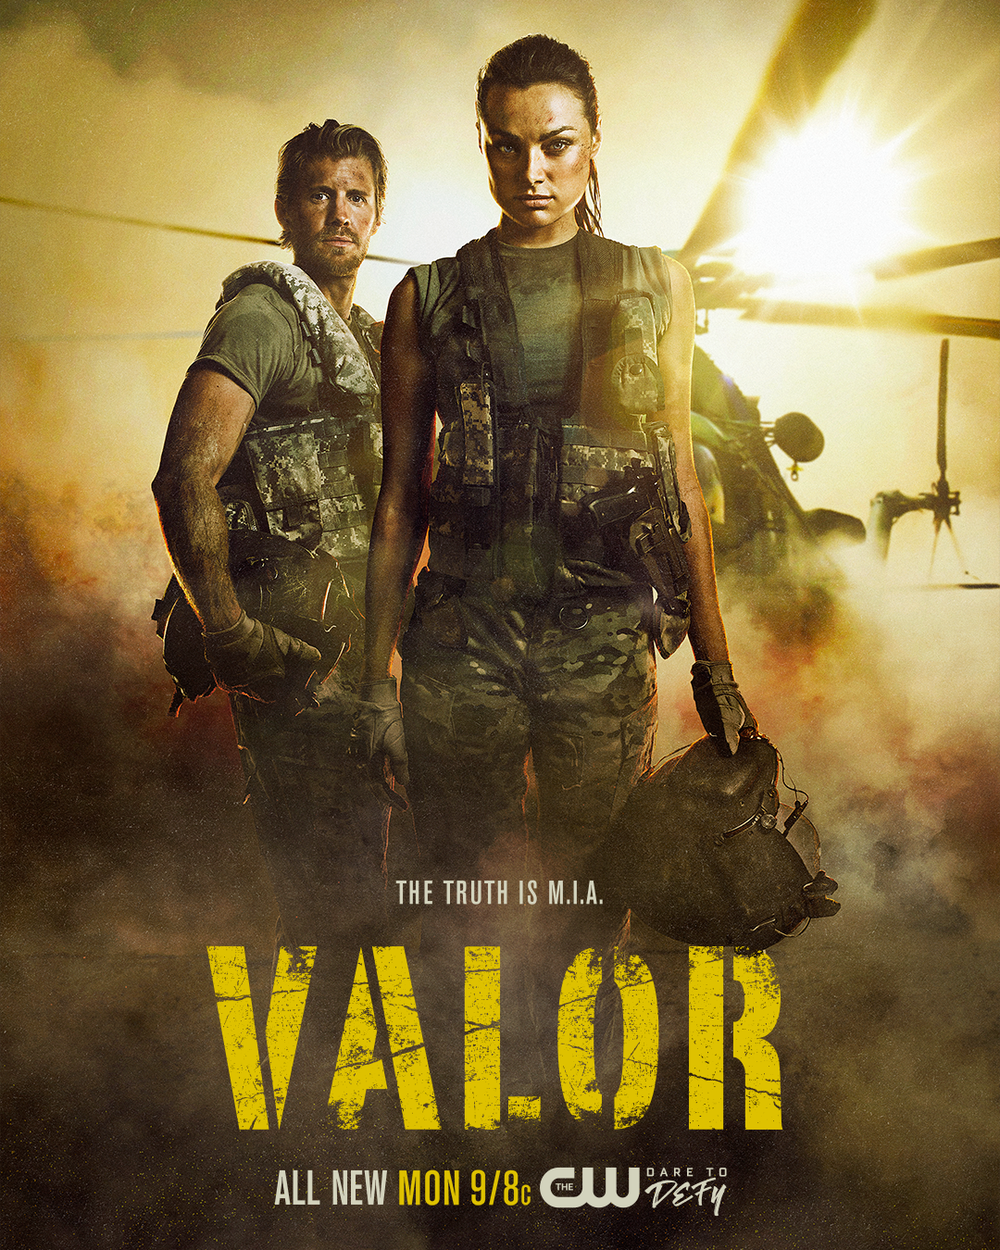 Valor. A new series coming to the CW this fall.  http://www.cwtv.com/shows/valor/